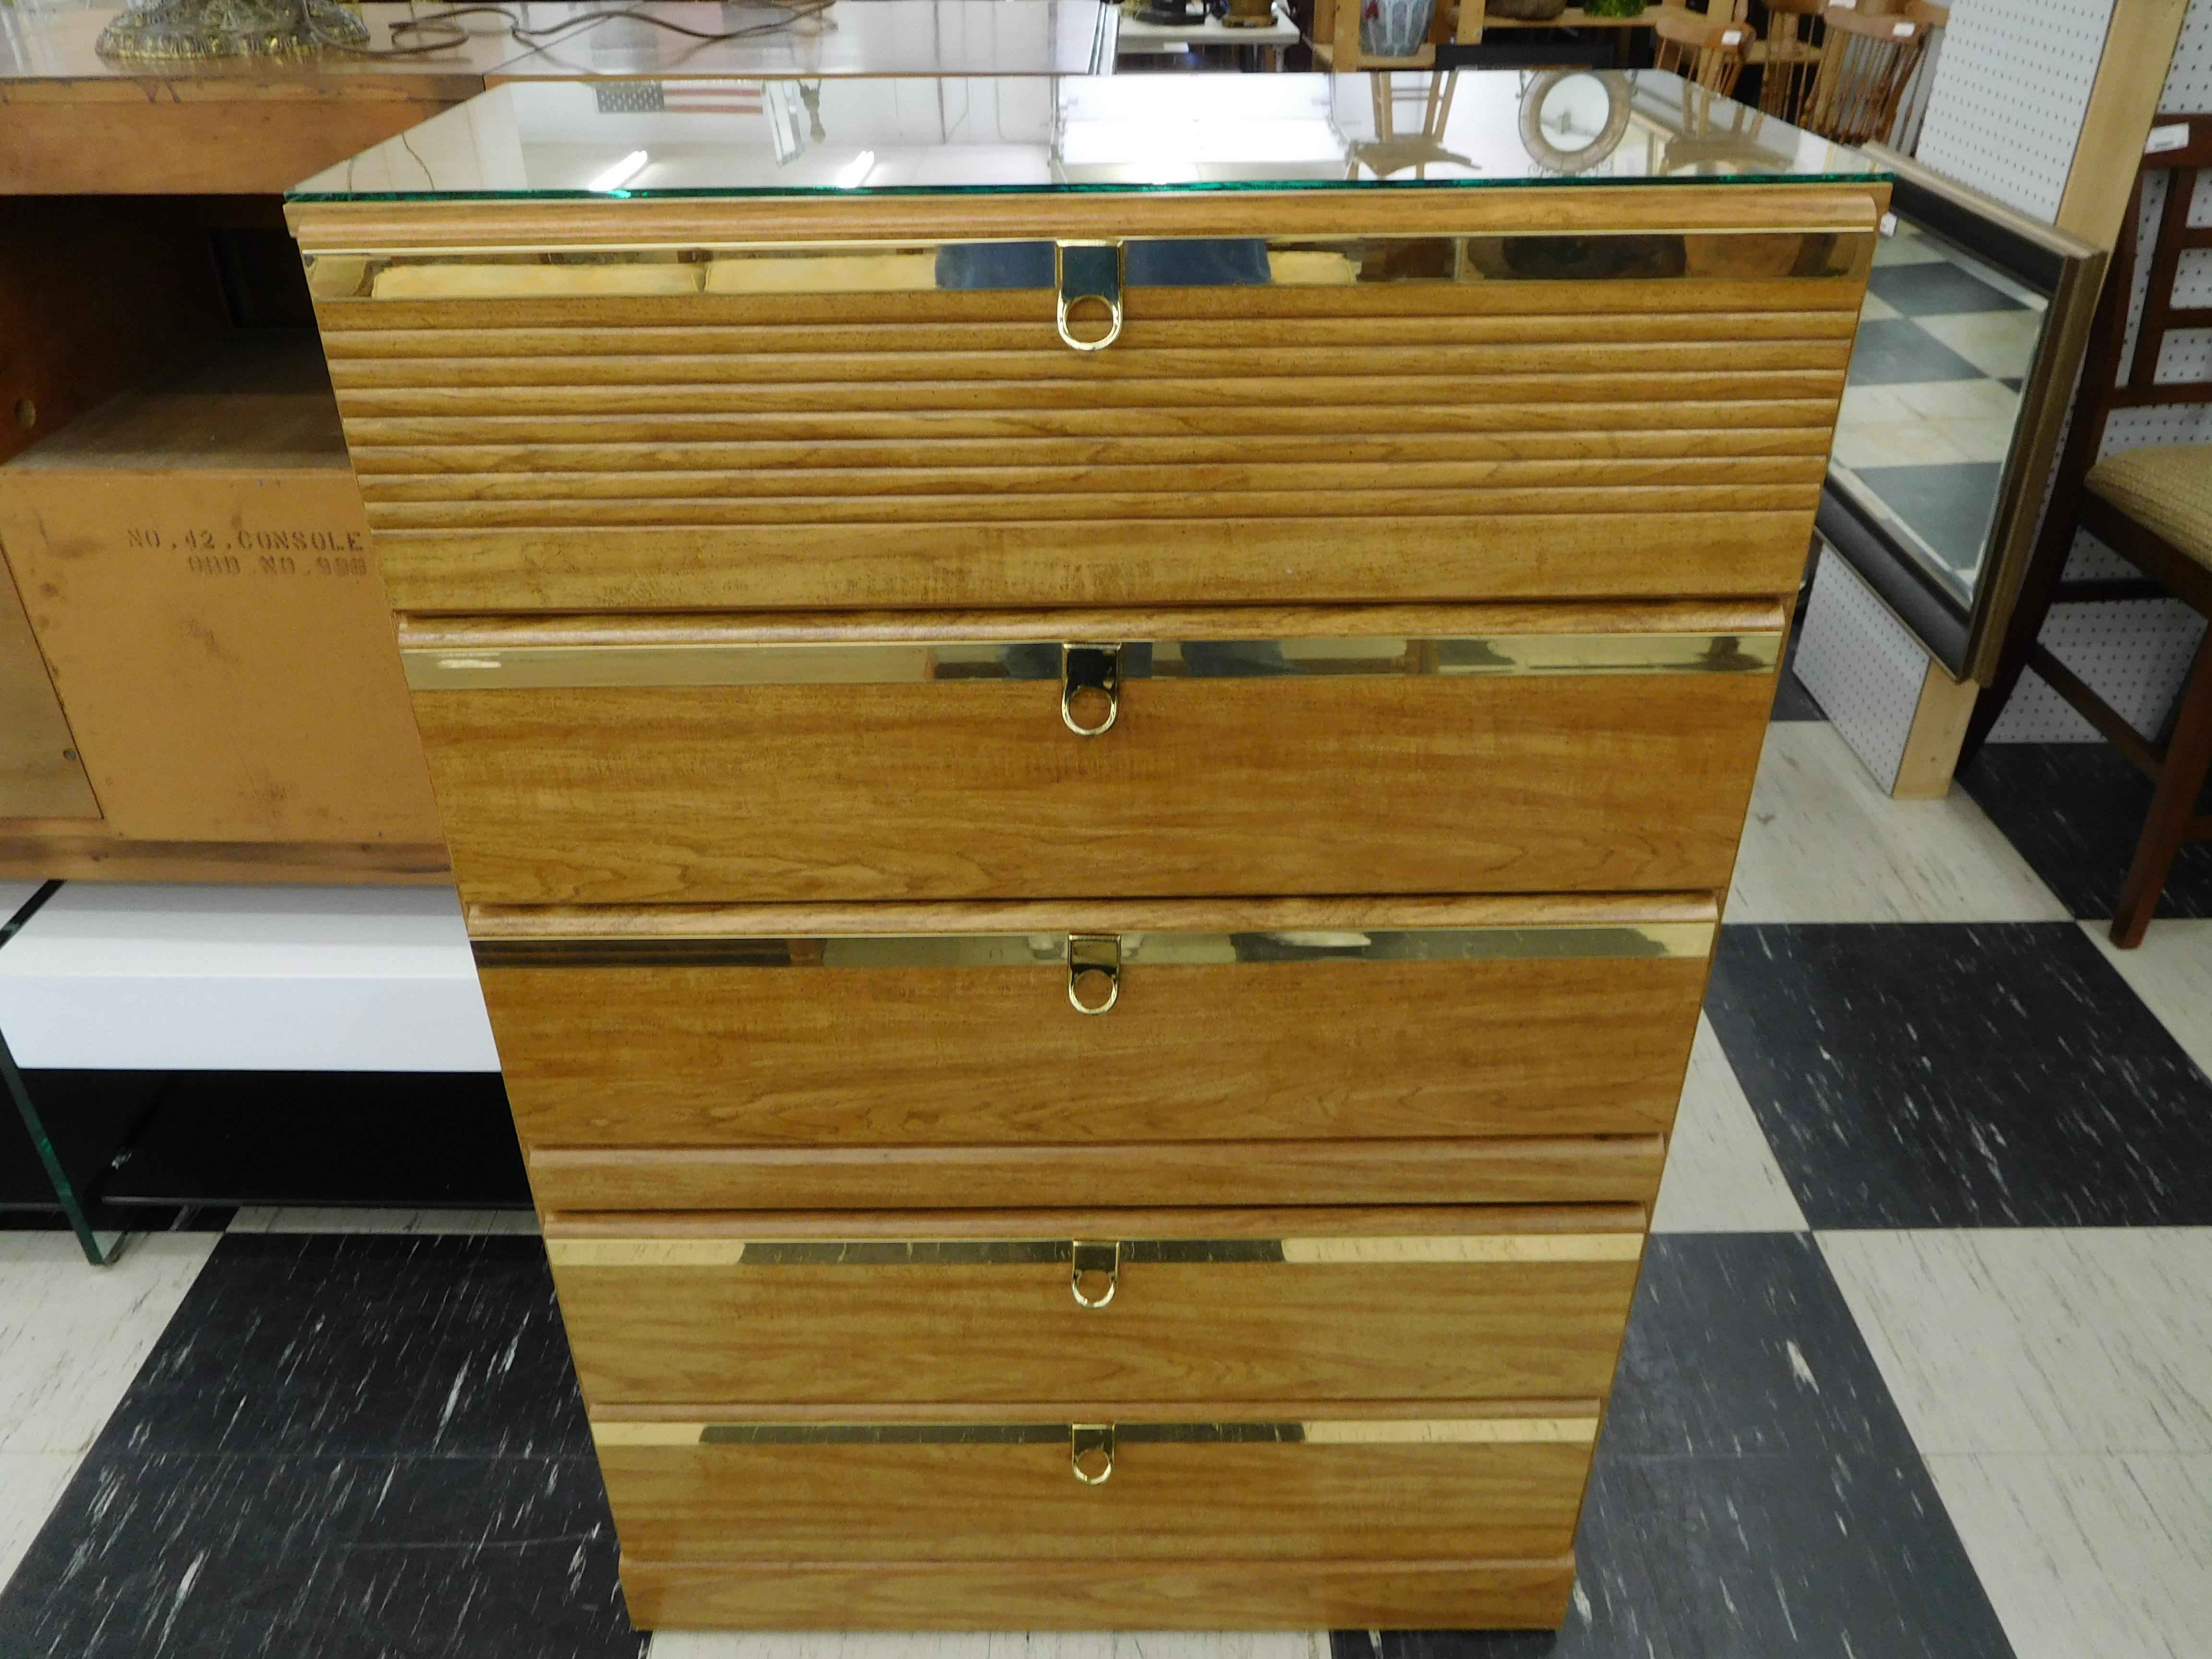 Modern Chest of Drawers with Brass Trimmed Drawers and Pulls